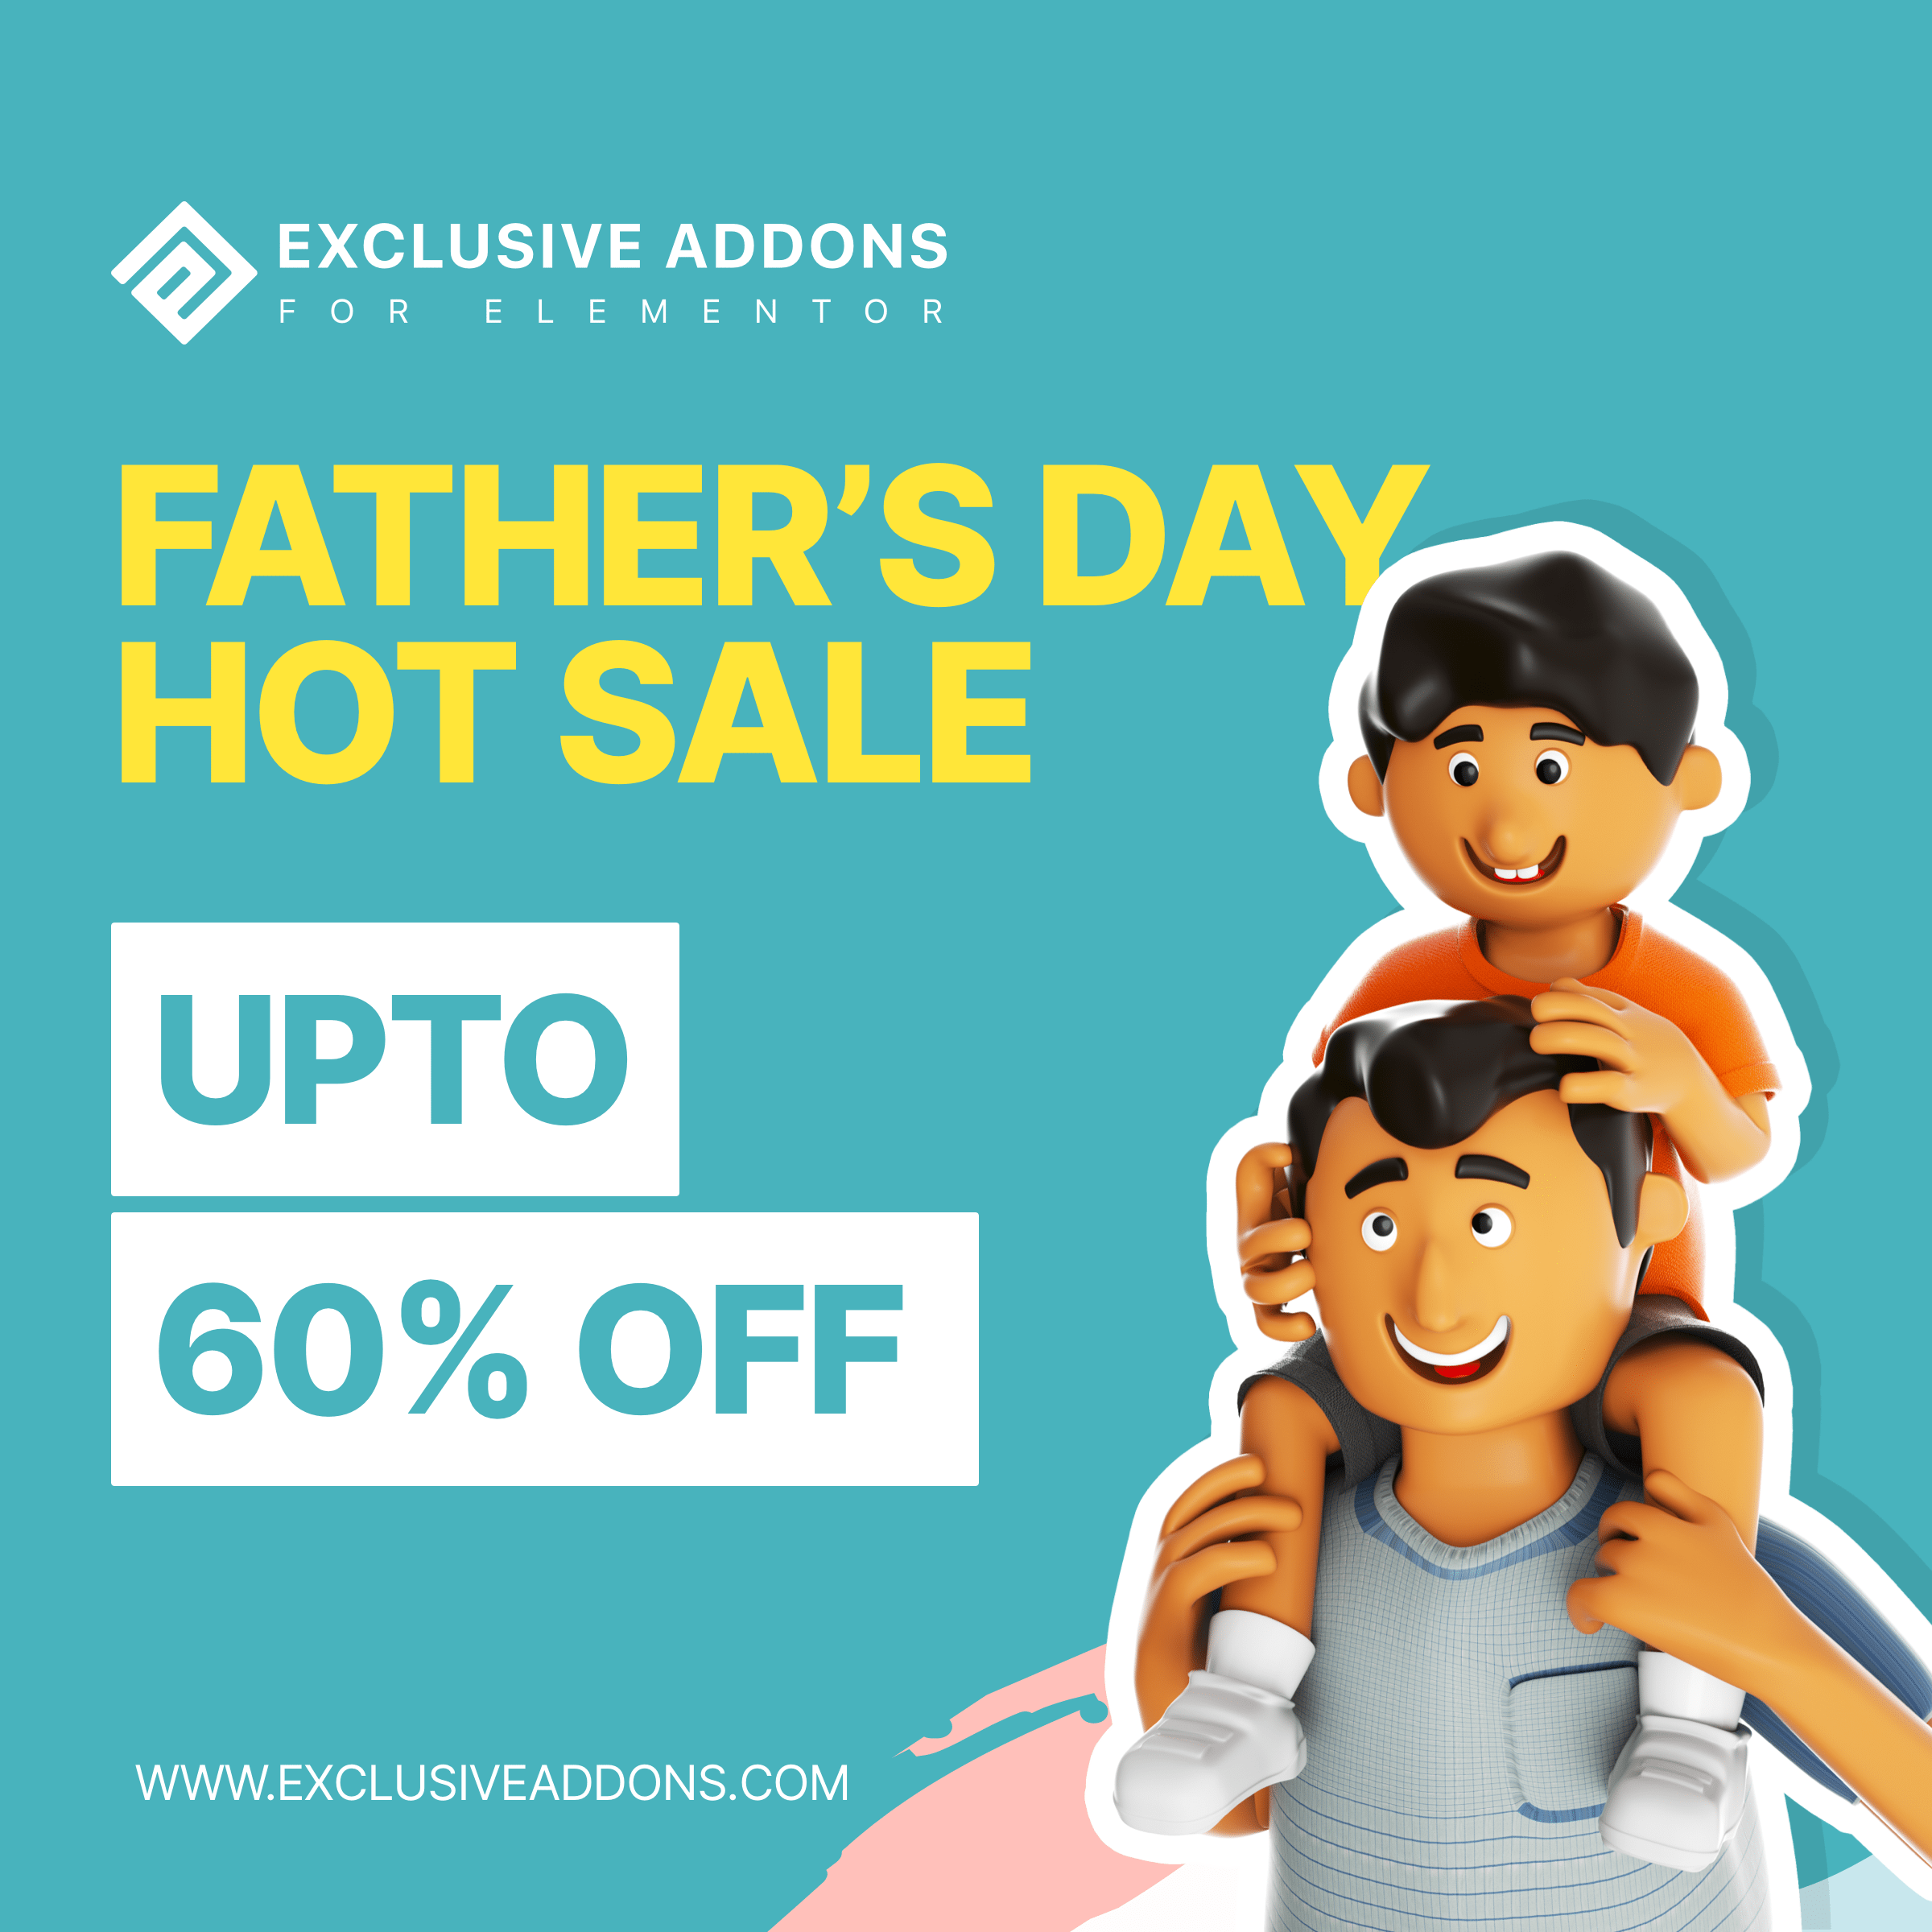 fathers day offer for elementor page builder